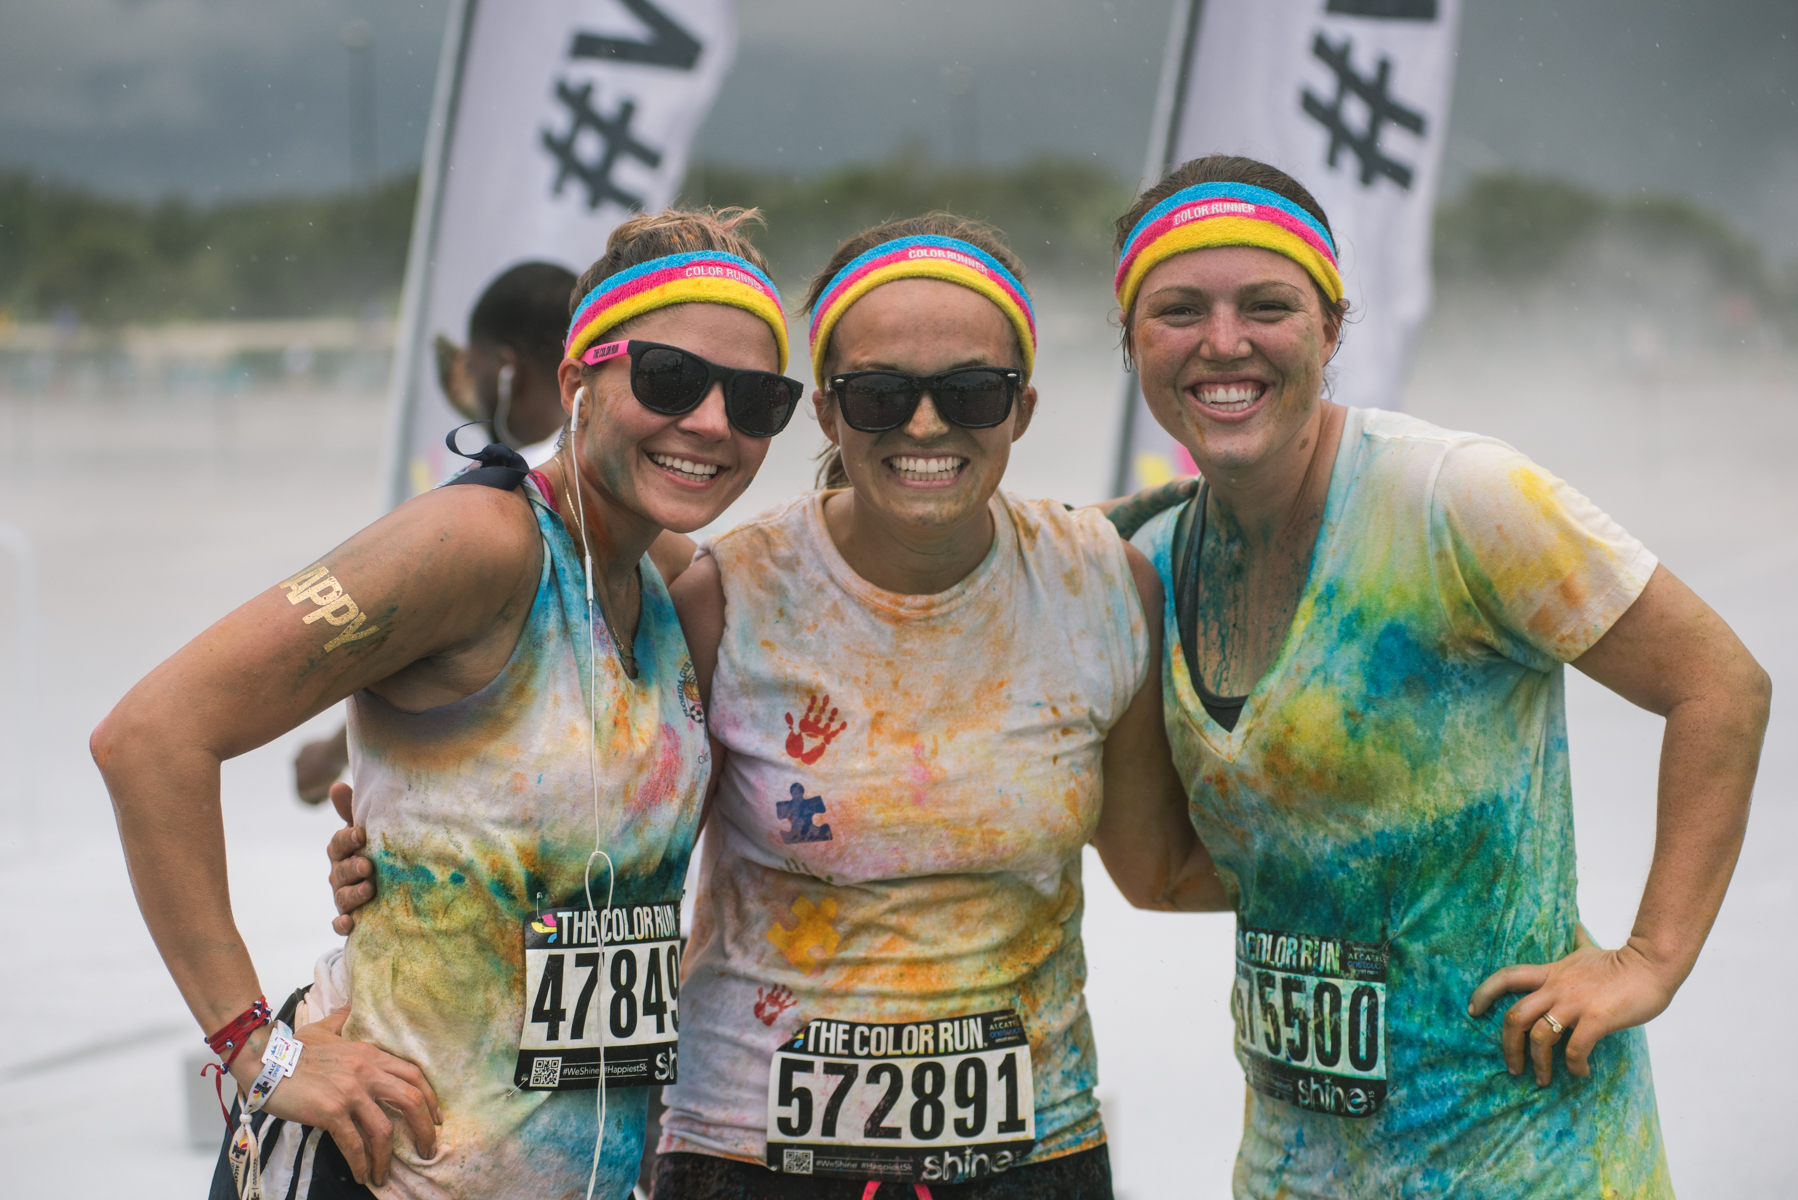 Color_Run-85.jpg